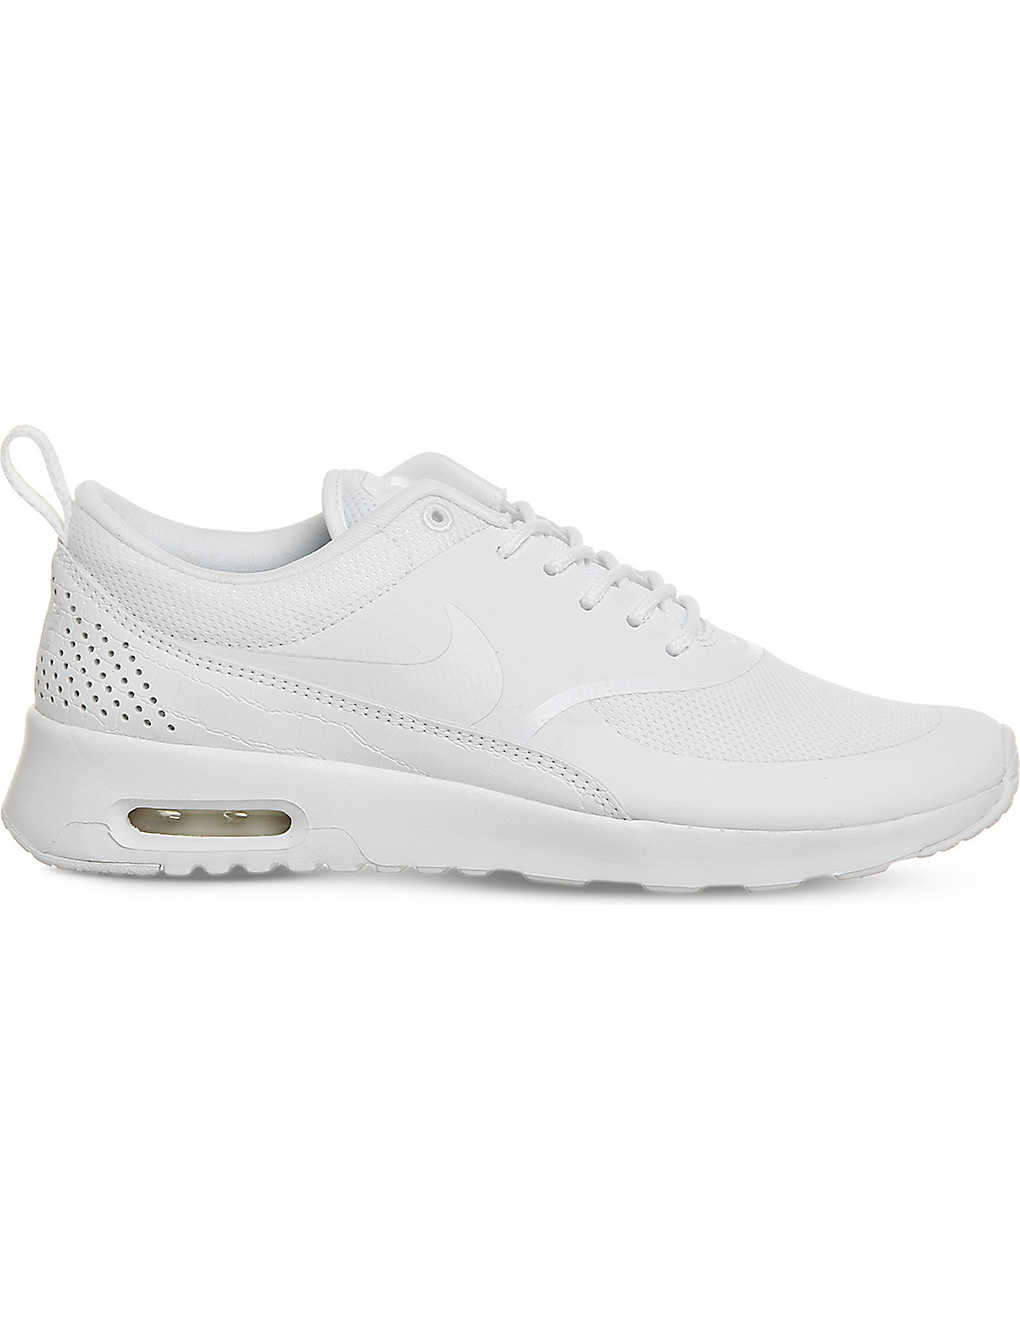 detailed look 71c53 3d242 NIKE - Air max thea trainers | Selfridges.com